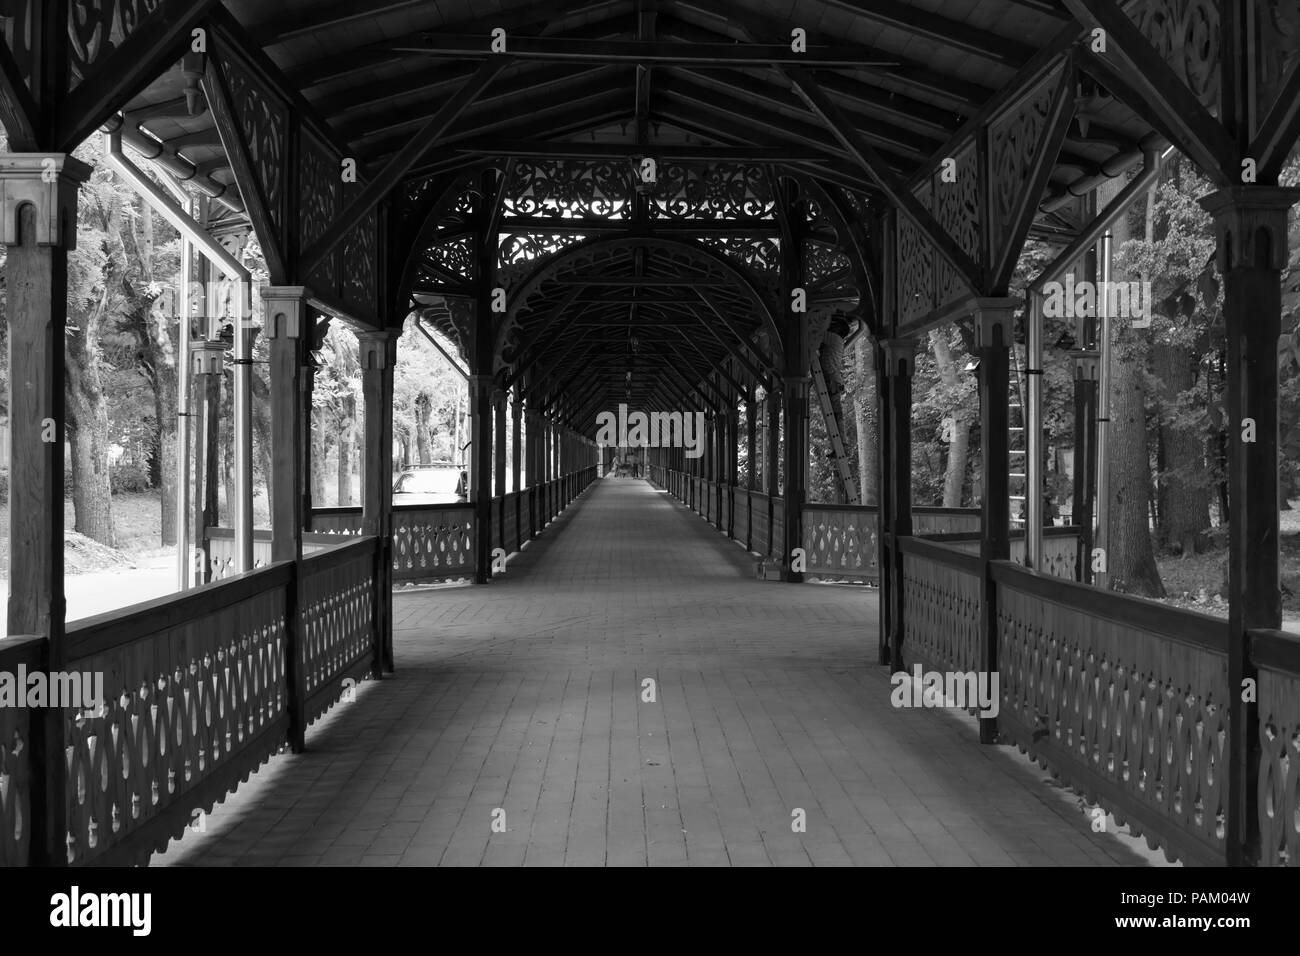 Colonnade walkway in Buzias, Romania in black and white - Stock Image